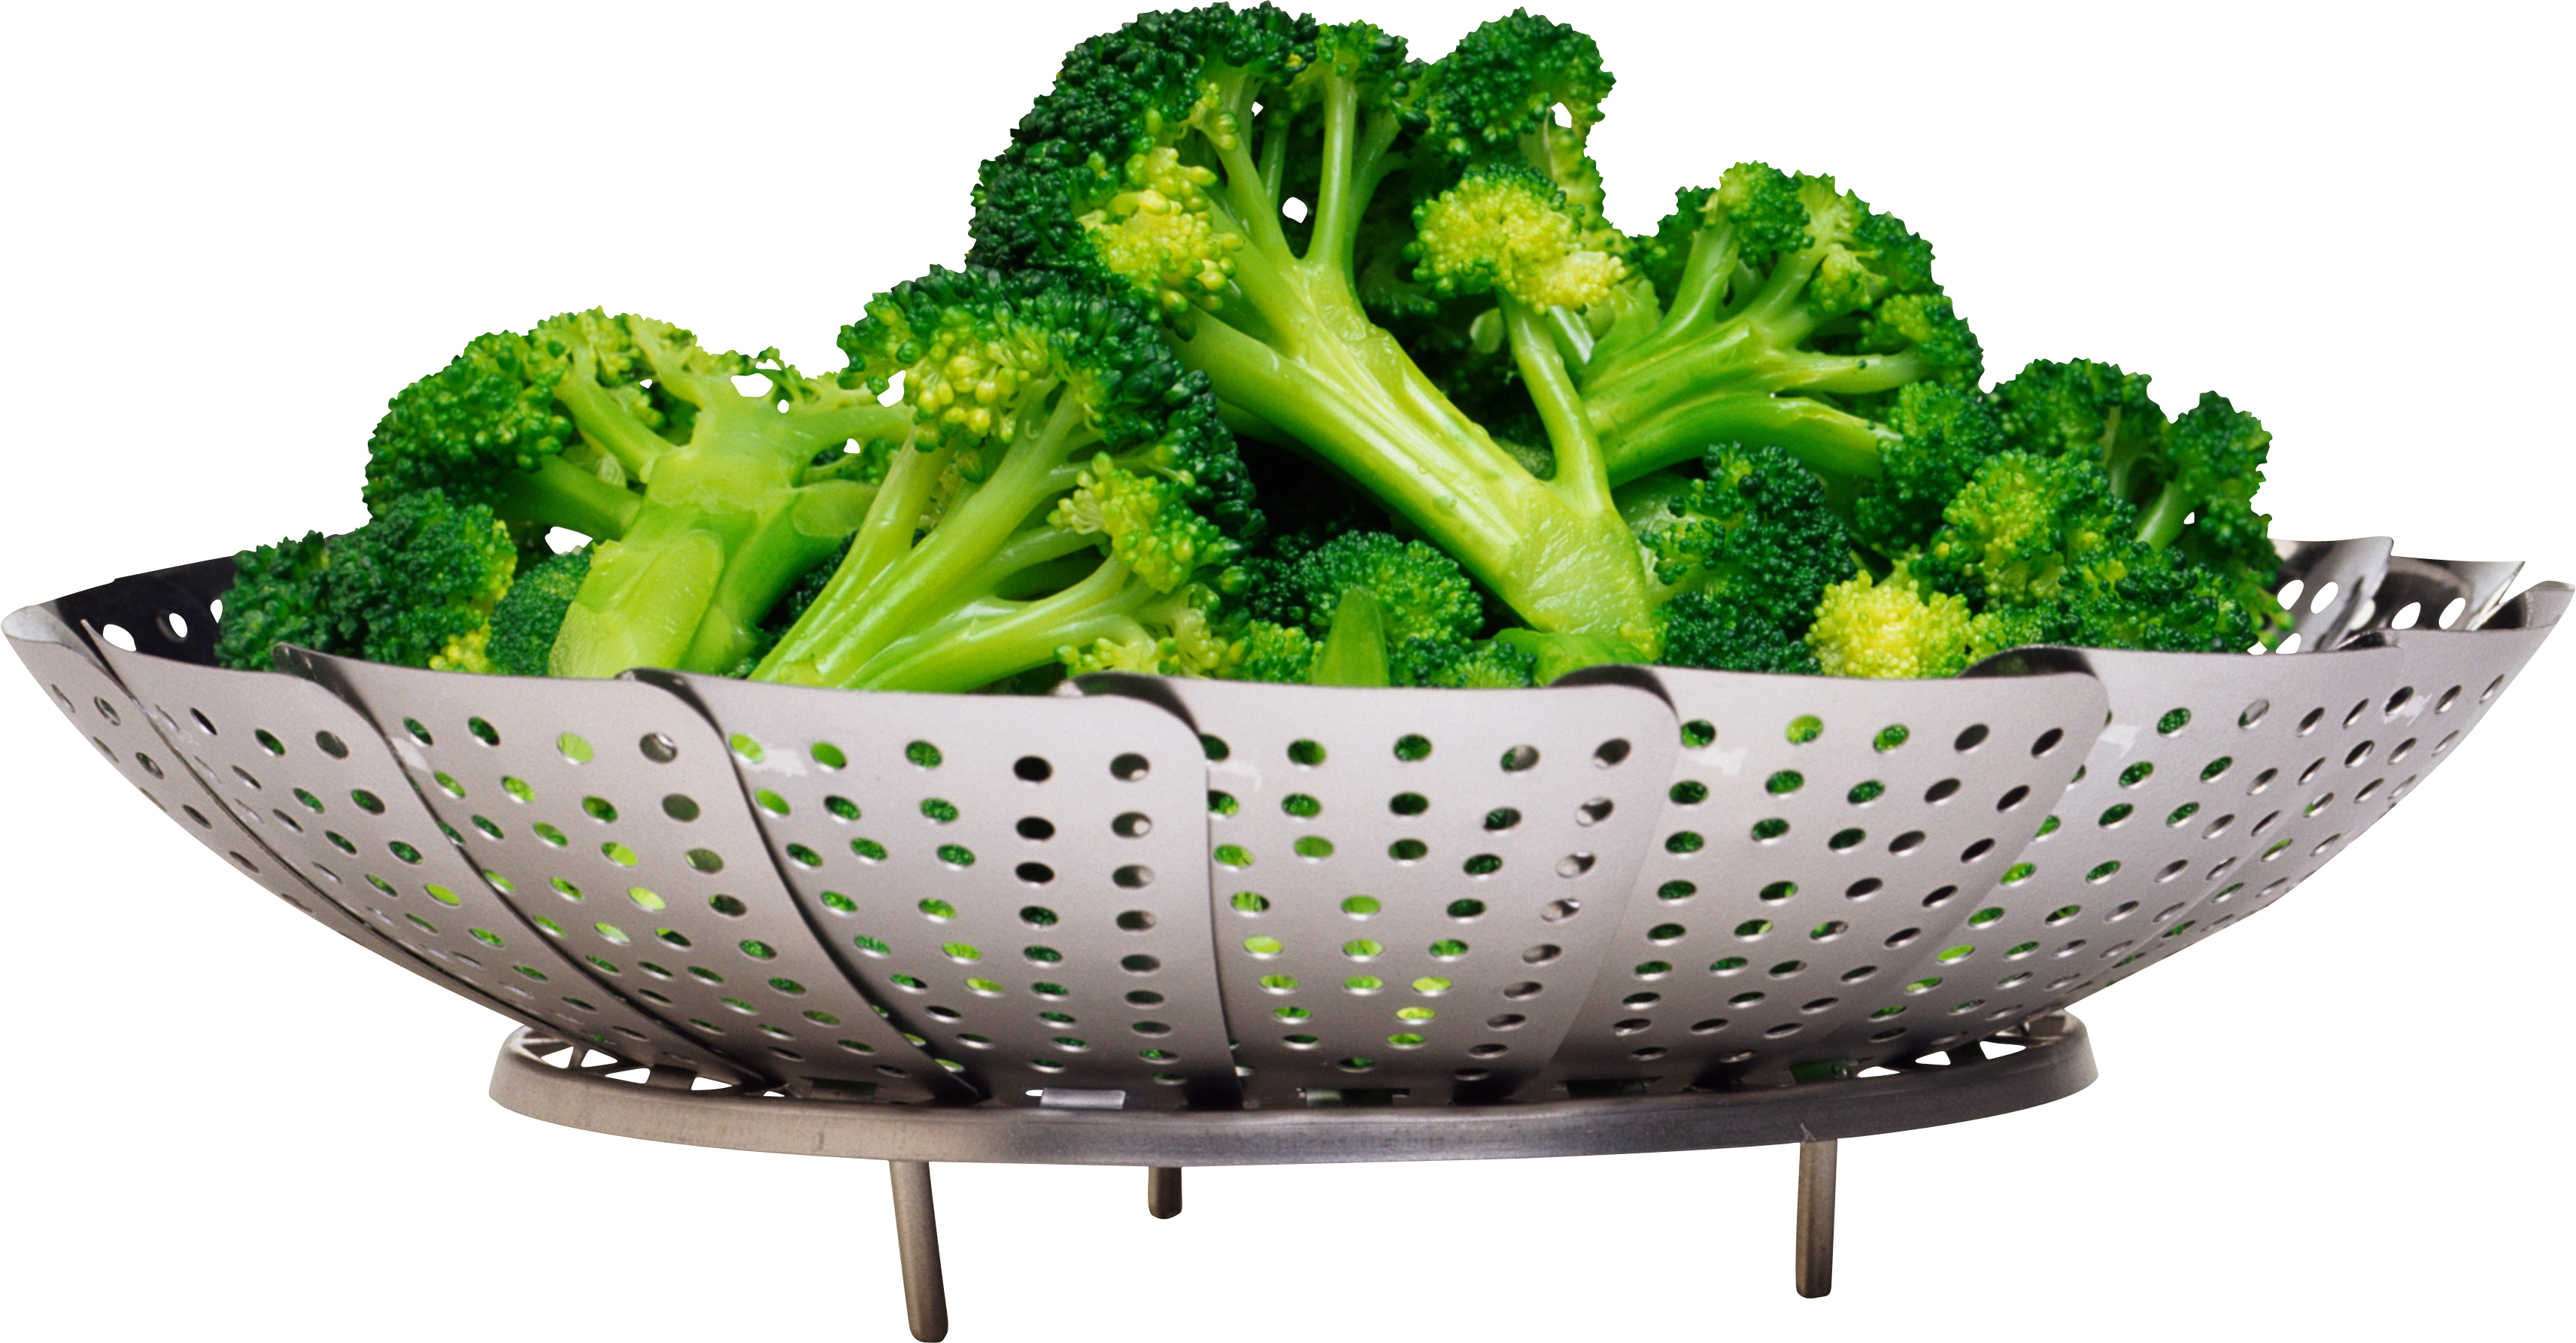 Salad clipart background Broccoli image Broccoli pictures free